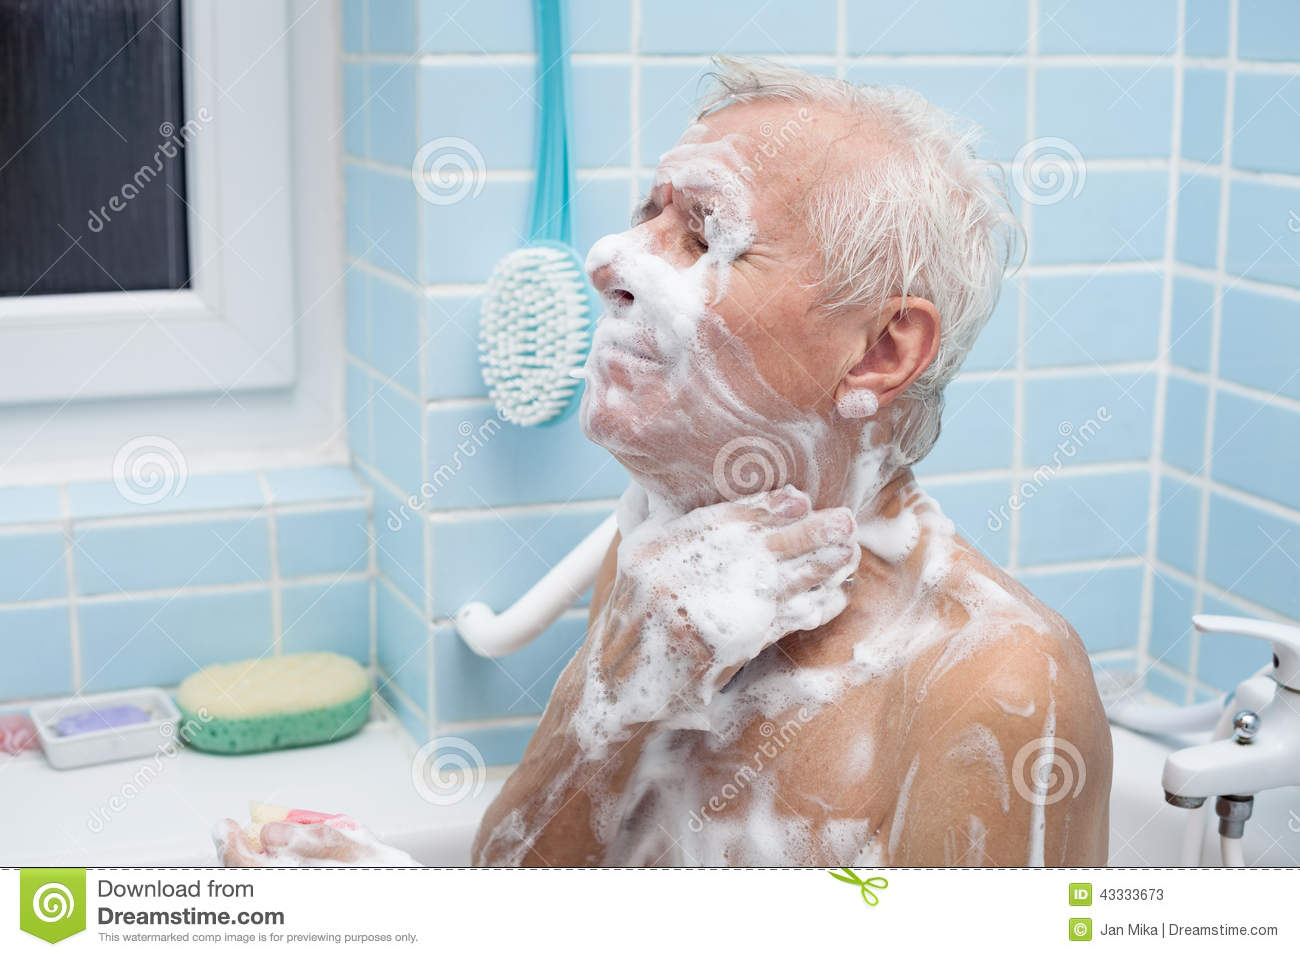 Senior man bathing stock image. Image of inside, bubbles - 43333673